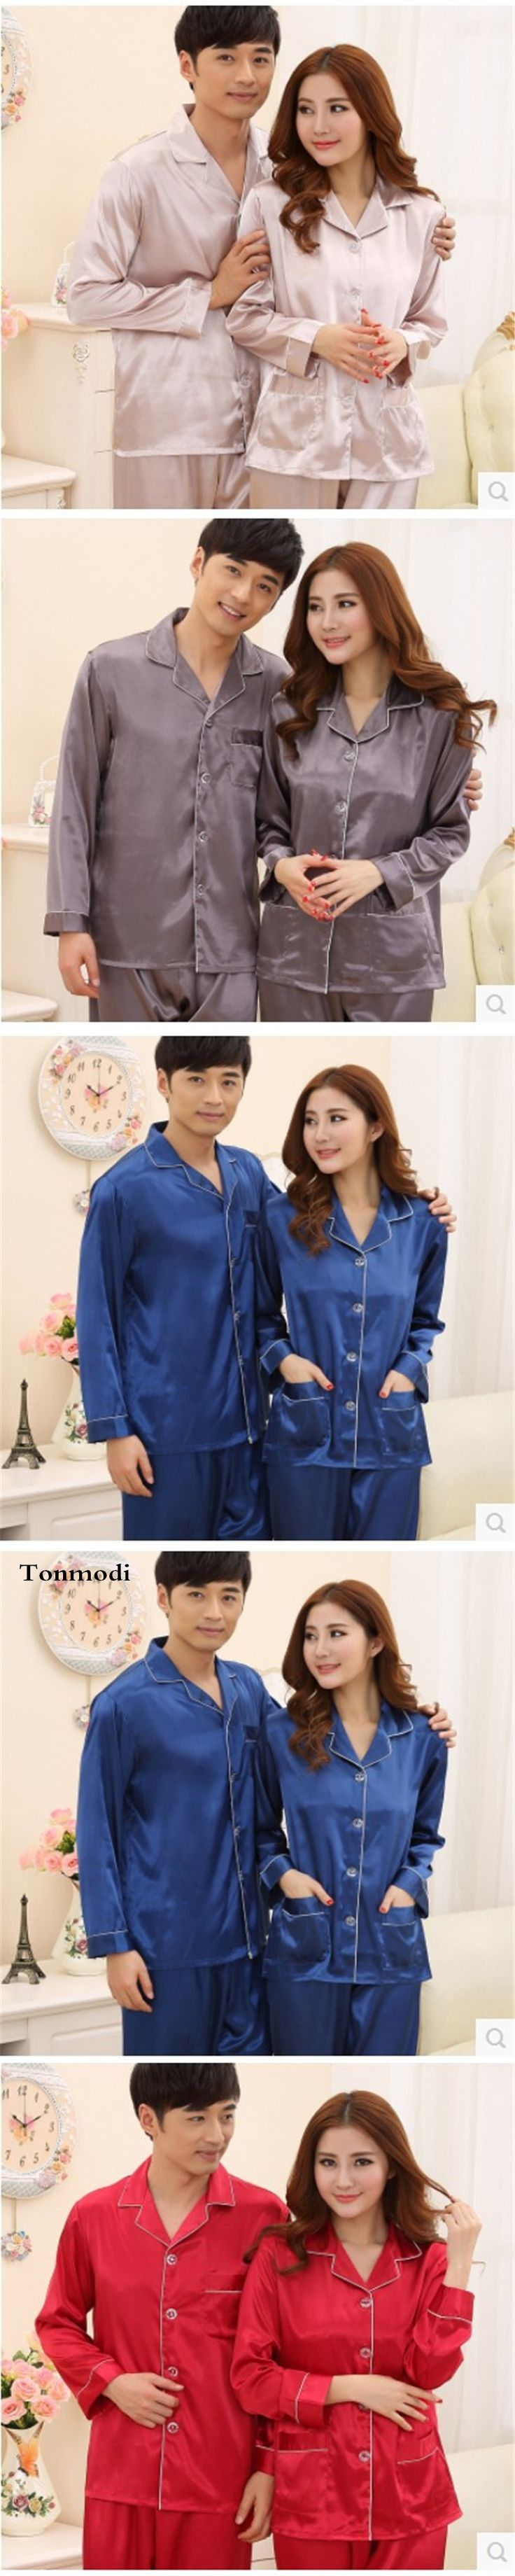 Silk Pajamas Women Spring And Autumn Love Men Silk Pyjamas Long Sleeve Sleepwear Women's Sleepwear Lounge Couple Pajama Sets